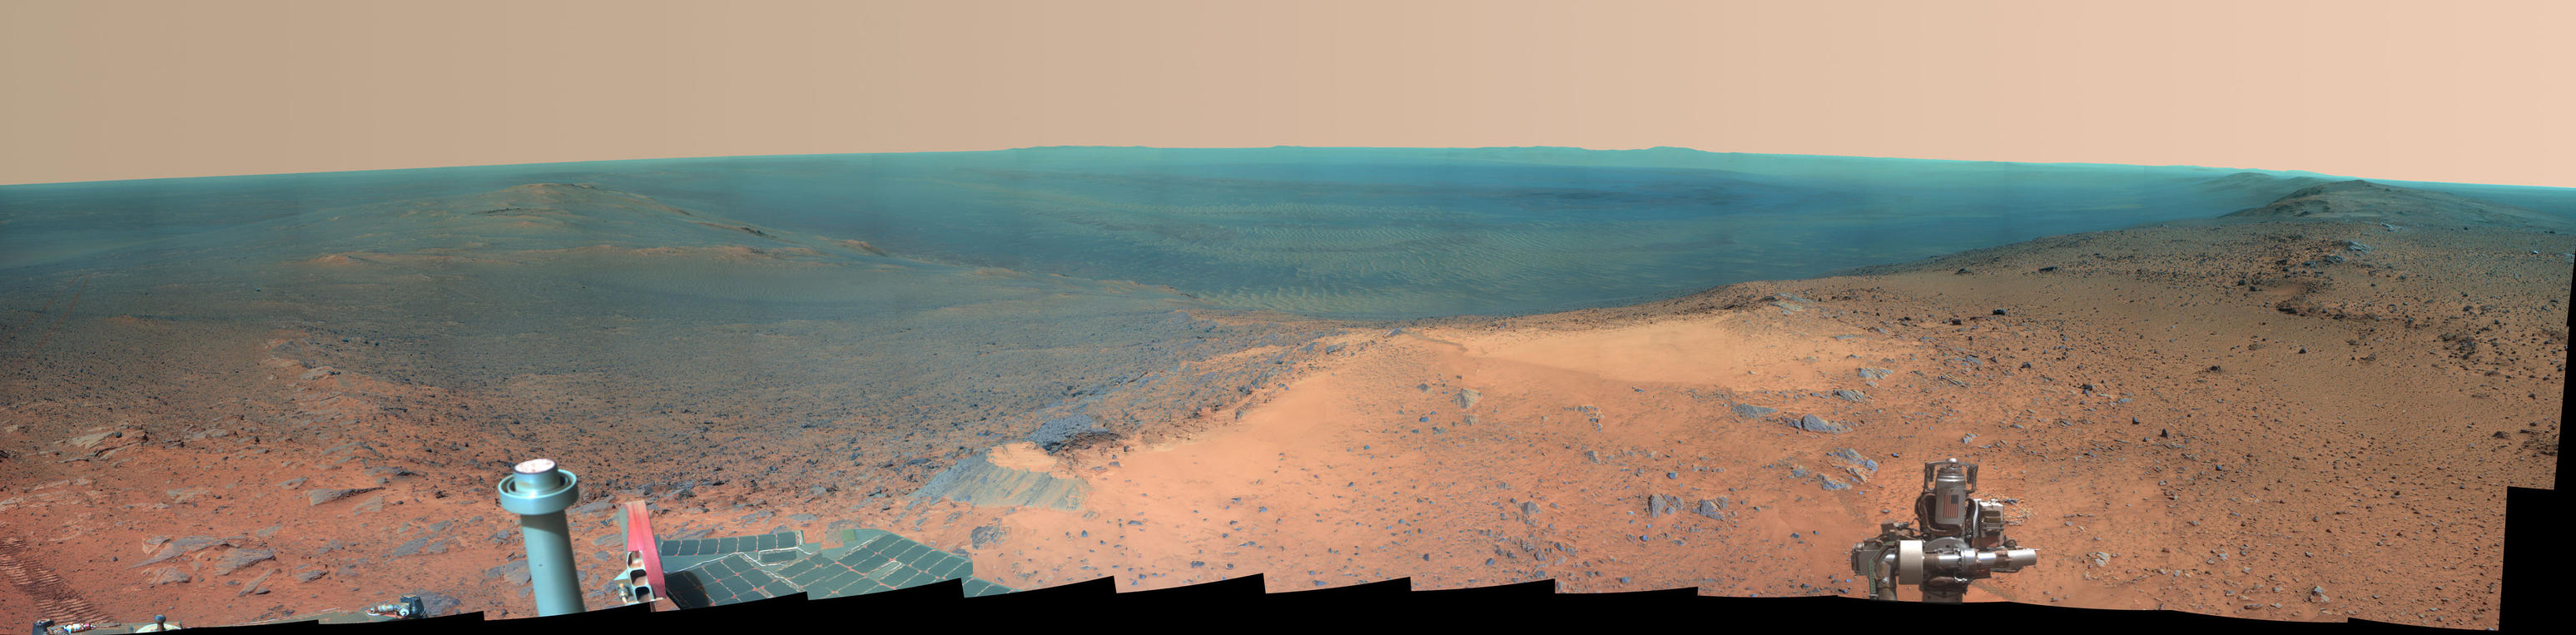 "NASA's Mars Exploration Rover Opportunity obtained this view from the top of the ""Cape Tribulation"" segment of the rim of Endeavour Crater. The rover reached this point three weeks before the 11th anniversary of its January 2004 landing on Mars."